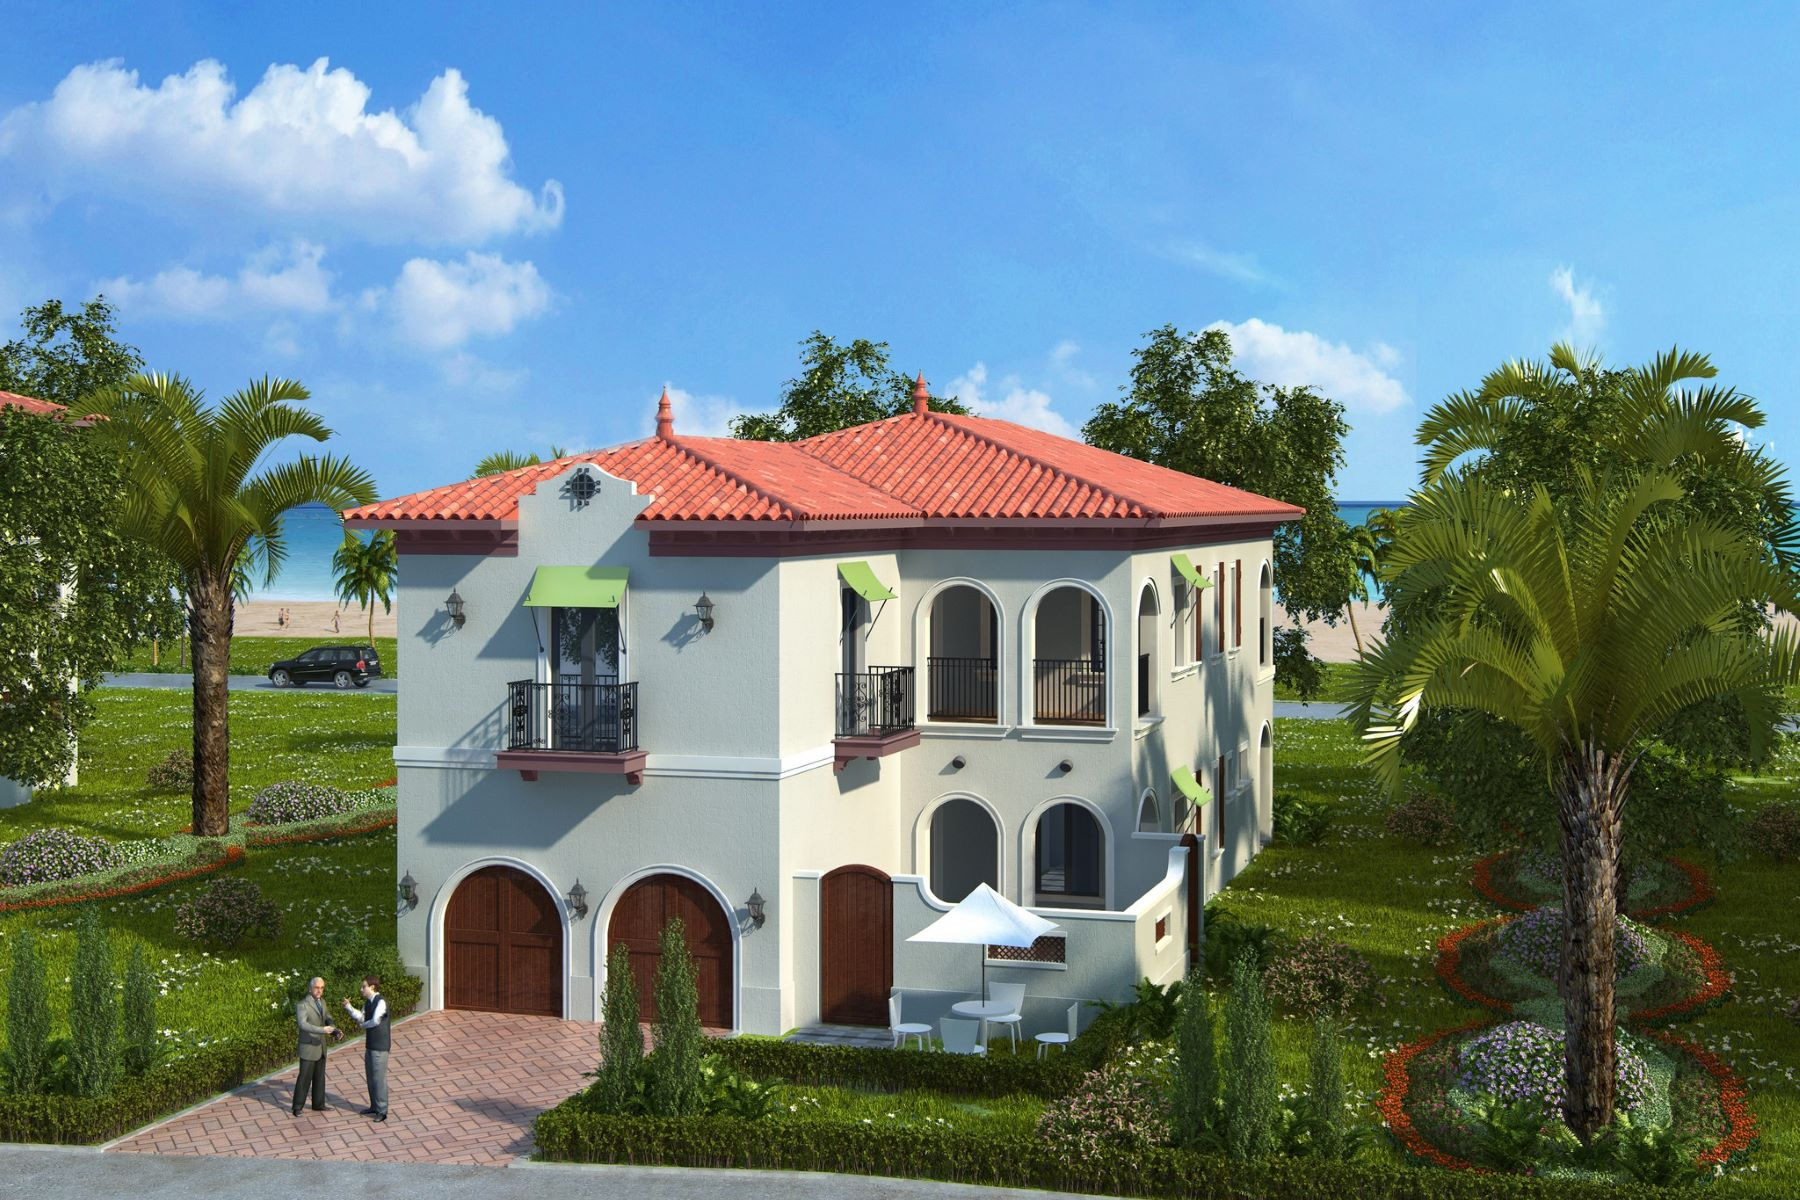 Single Family Homes for Sale at New Luxury Homes Available in Matanilla Reef at Aquarina! 7422 Matanilla Reef Way Melbourne Beach, Florida 32951 United States